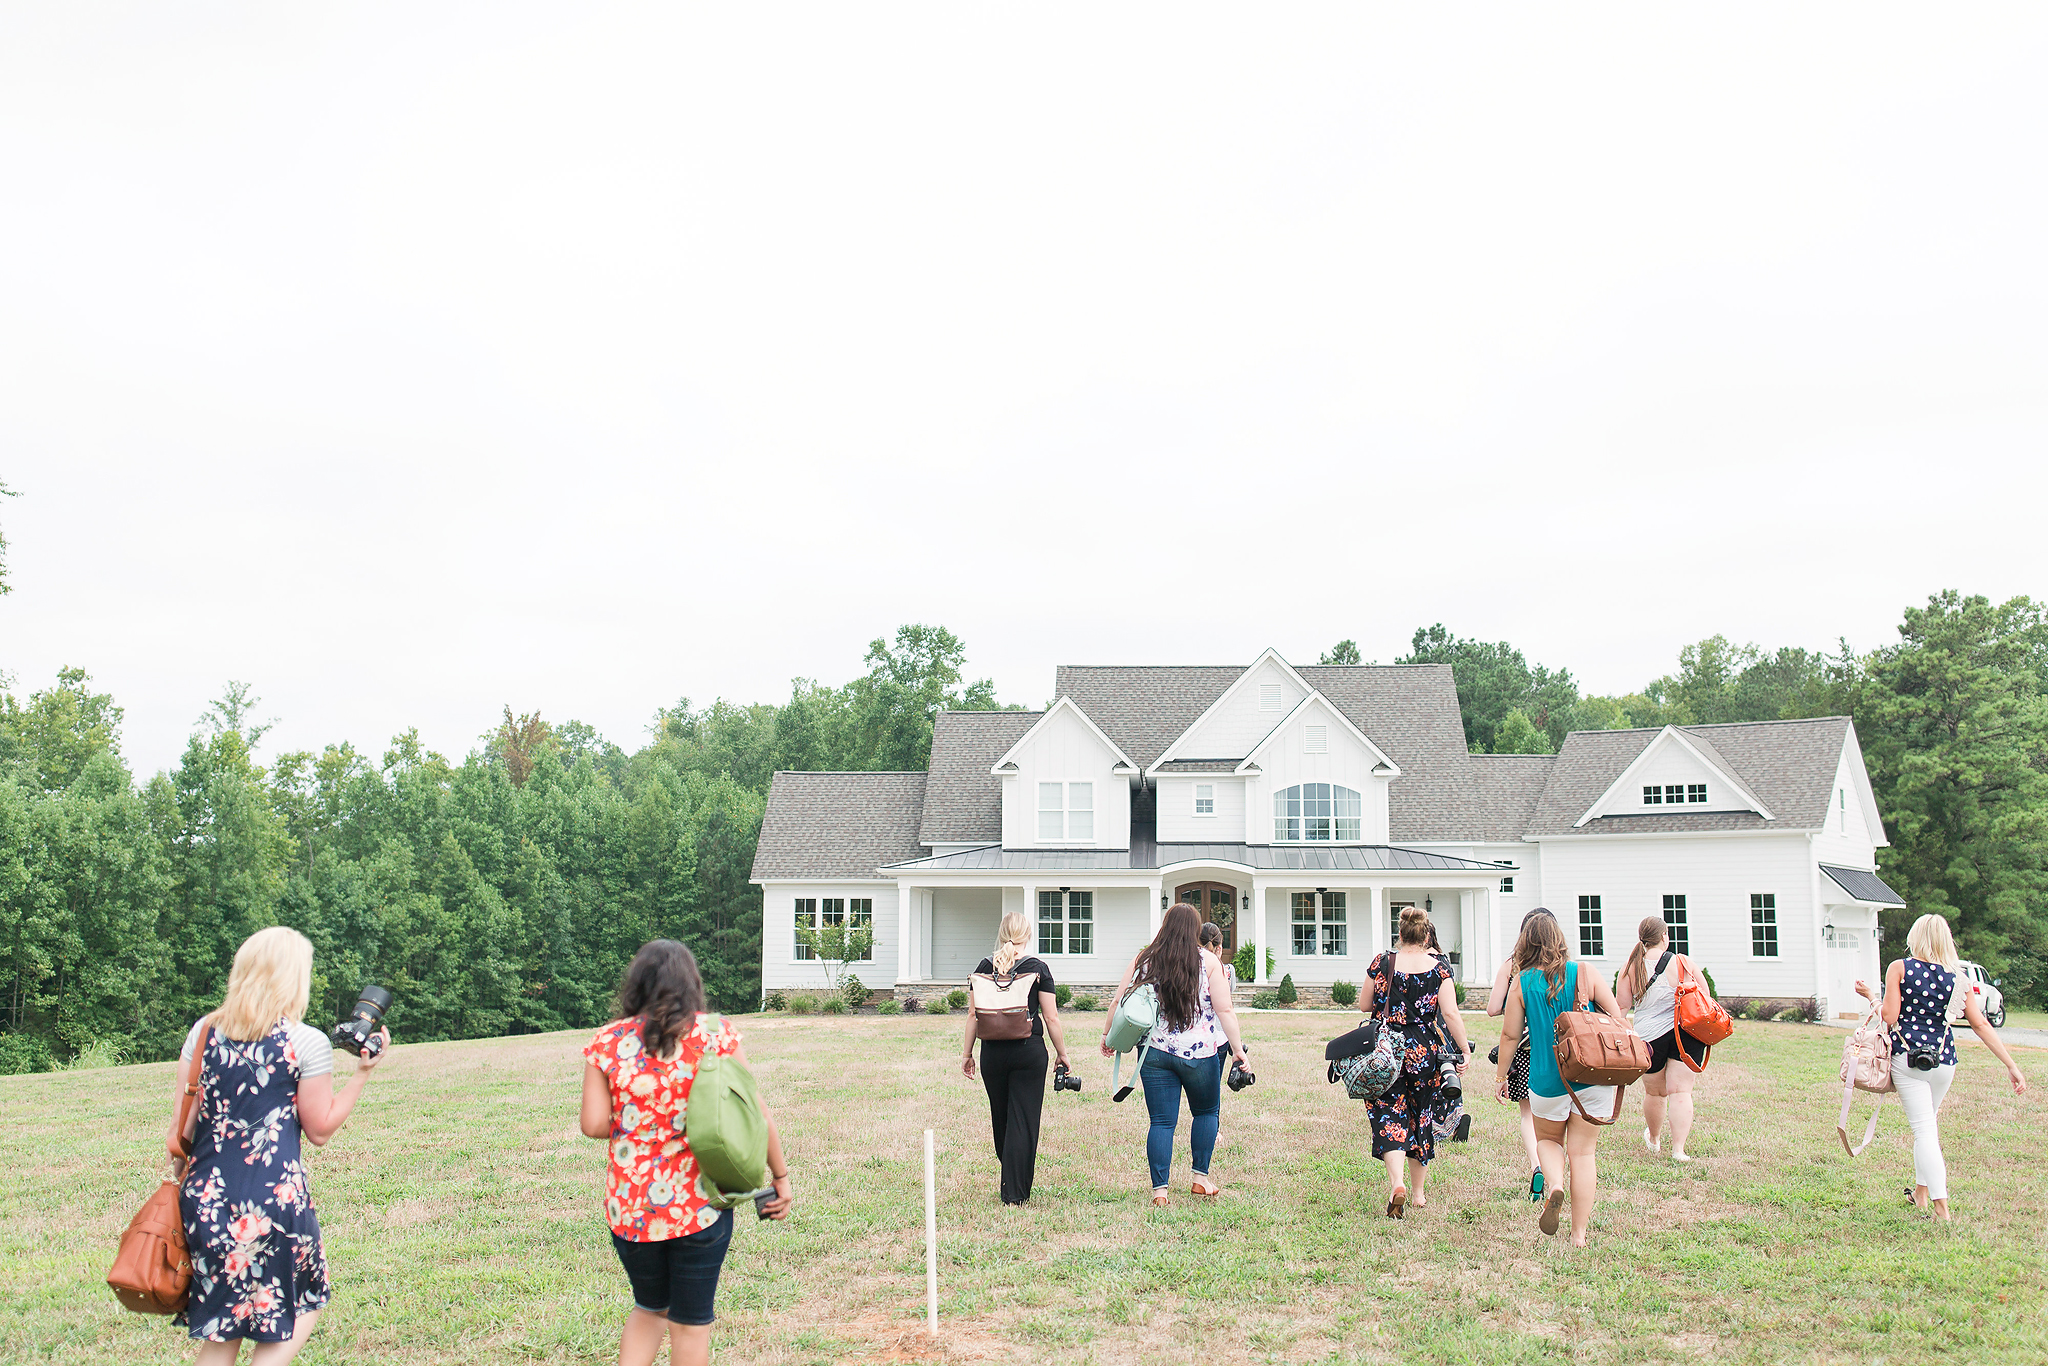 Back to the house! It's pretty, huh?© Katelyn James Photography